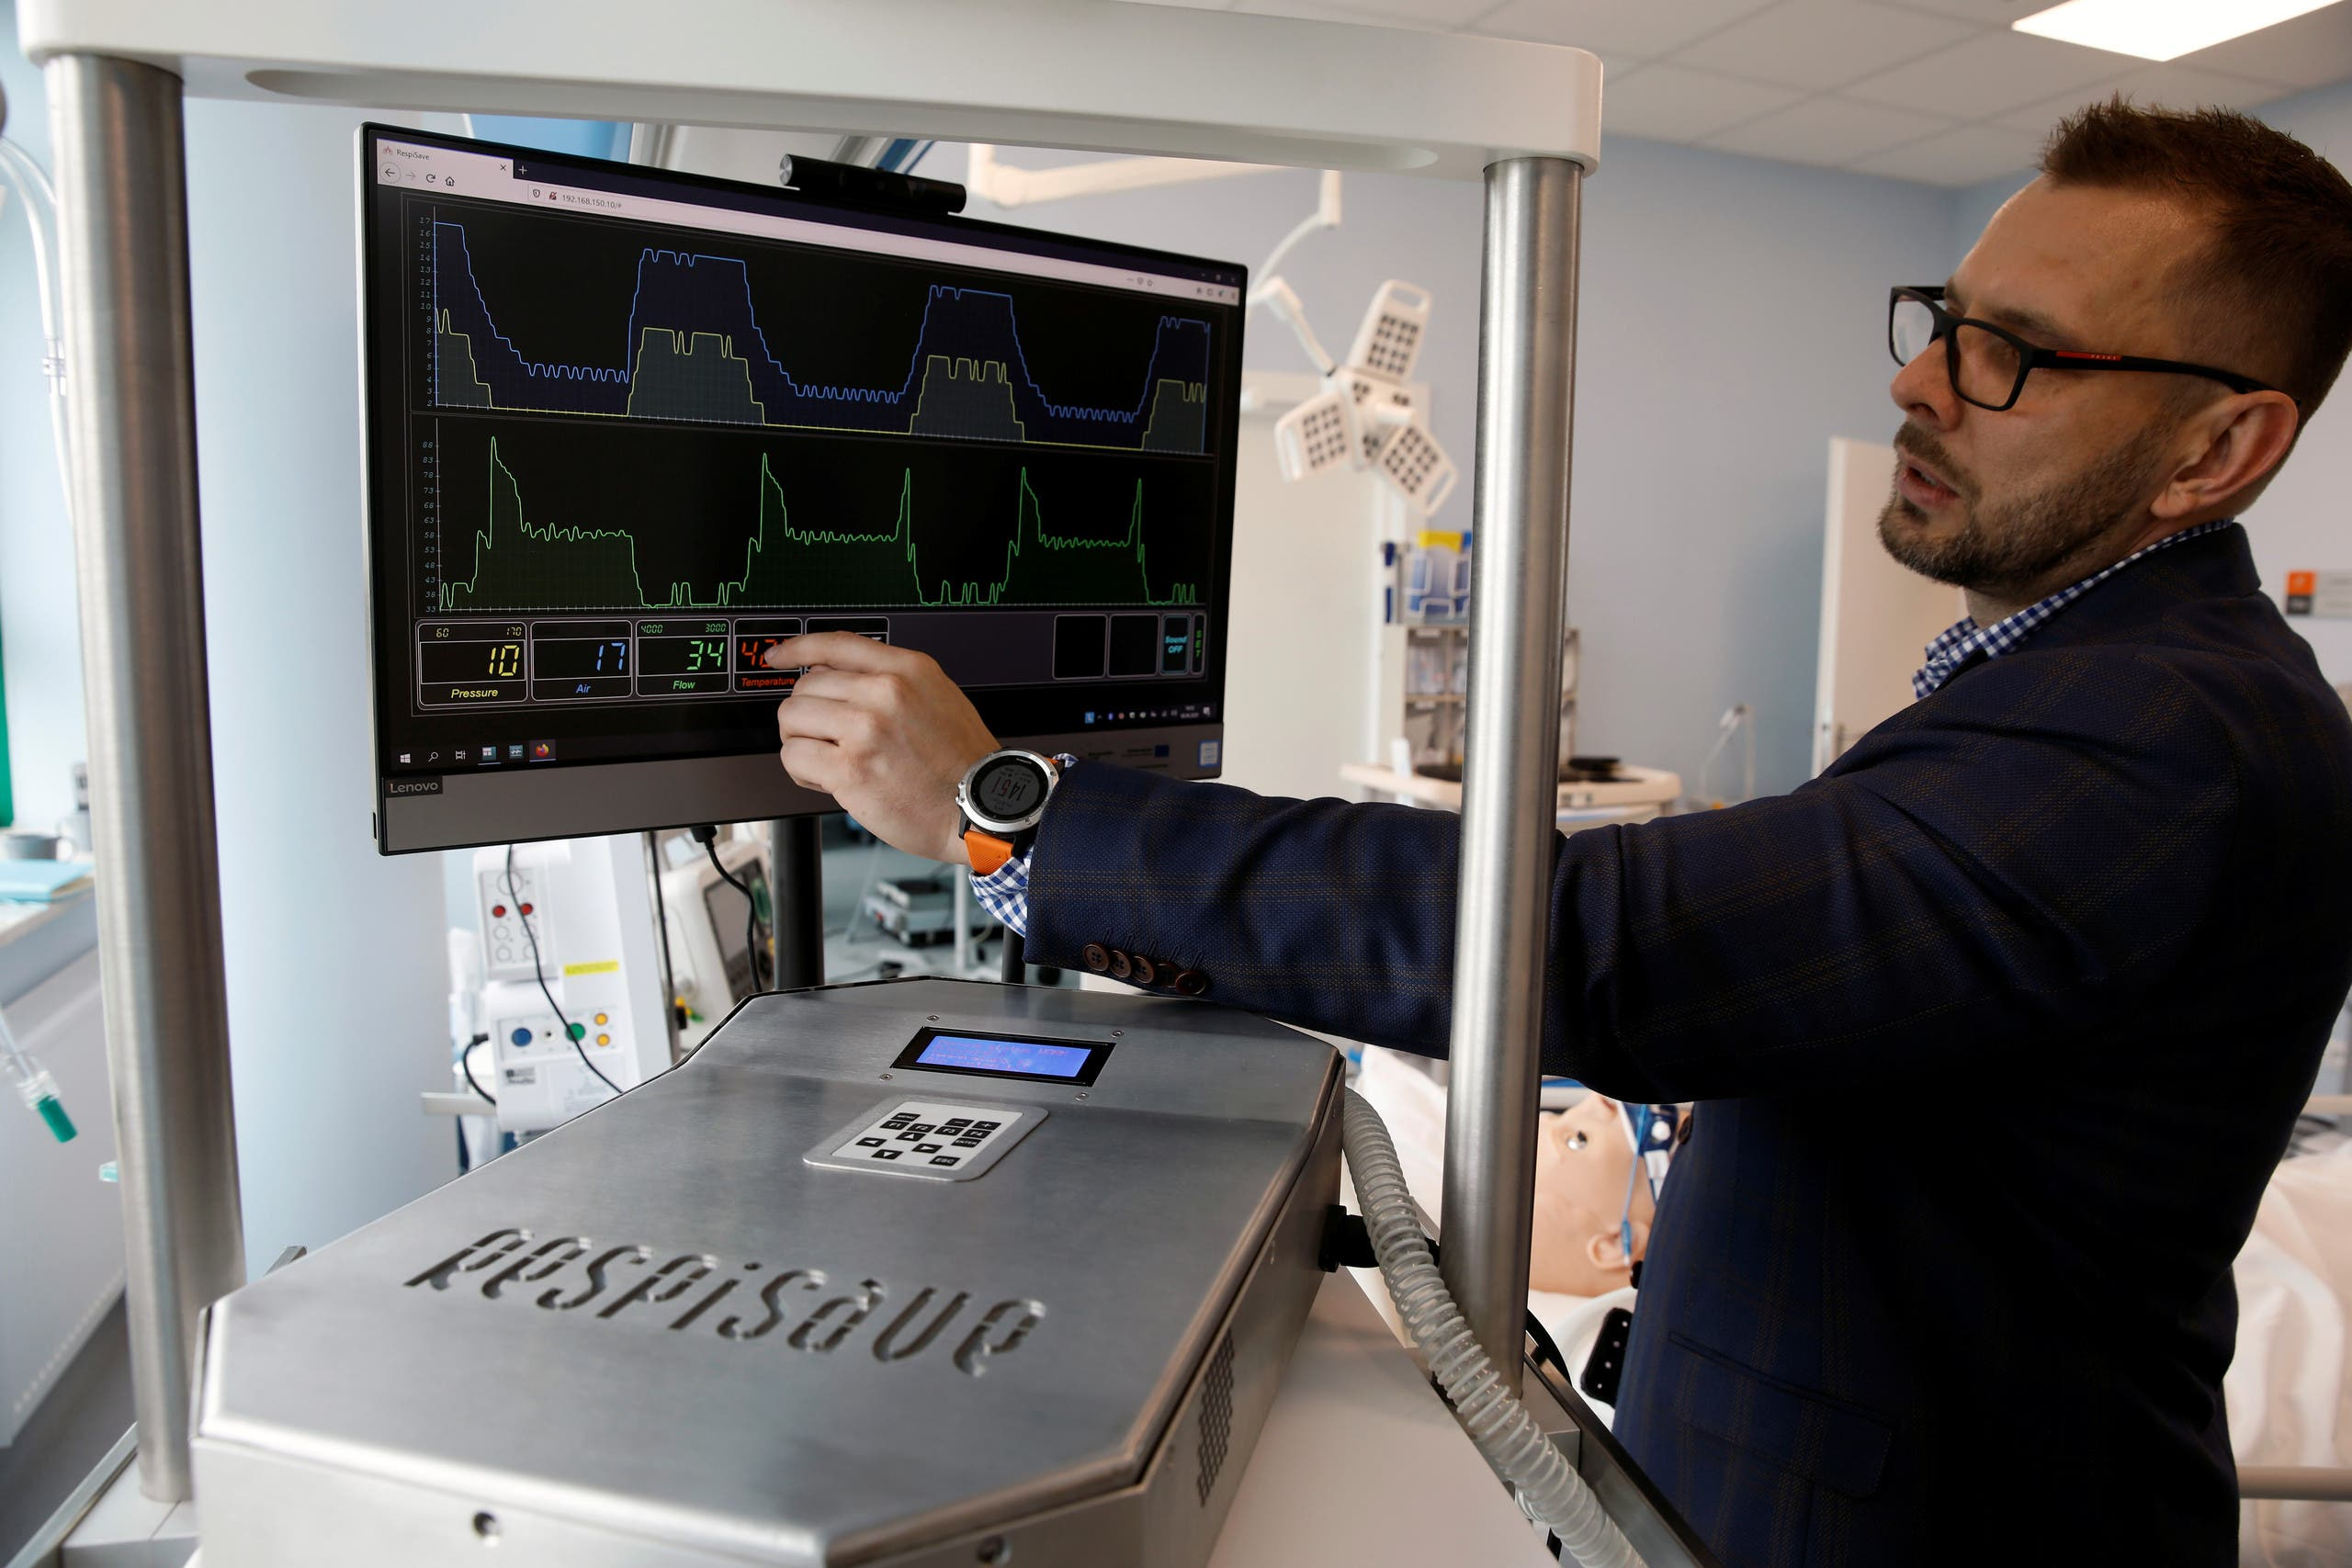 Szarpak presents Respisave, remote controlled respirator at Centre for Medical Simulation MedExcellence in Warsaw. (Reuters)